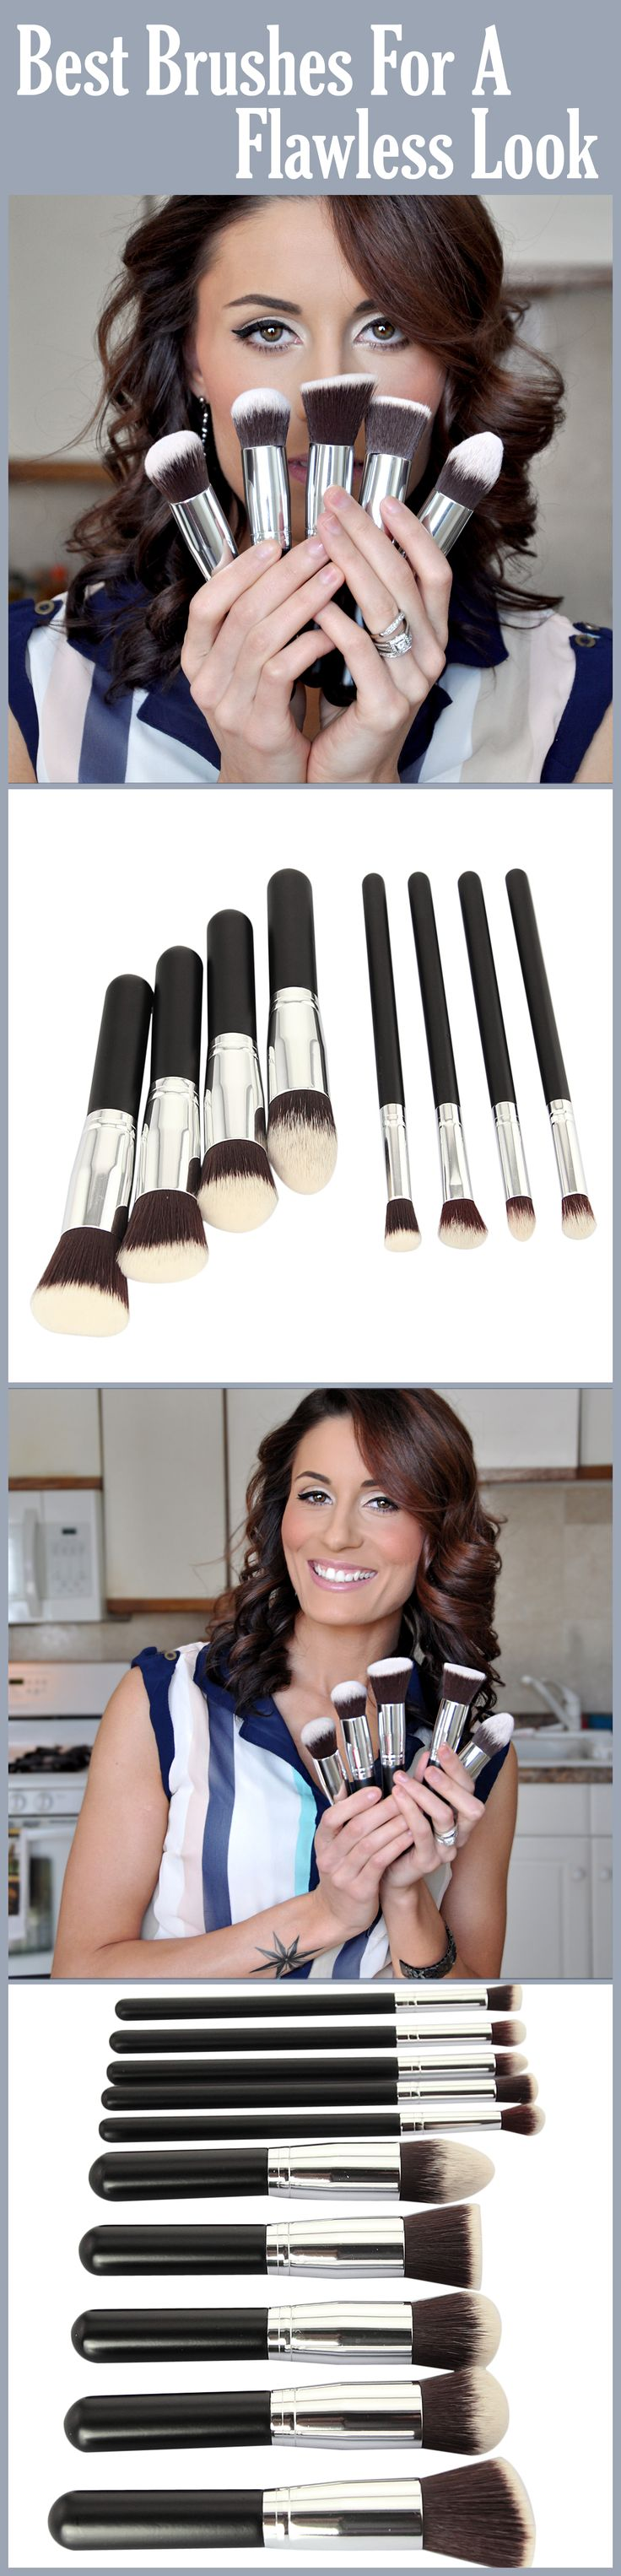 Video link explaining in detail uses of different make up brushes!!